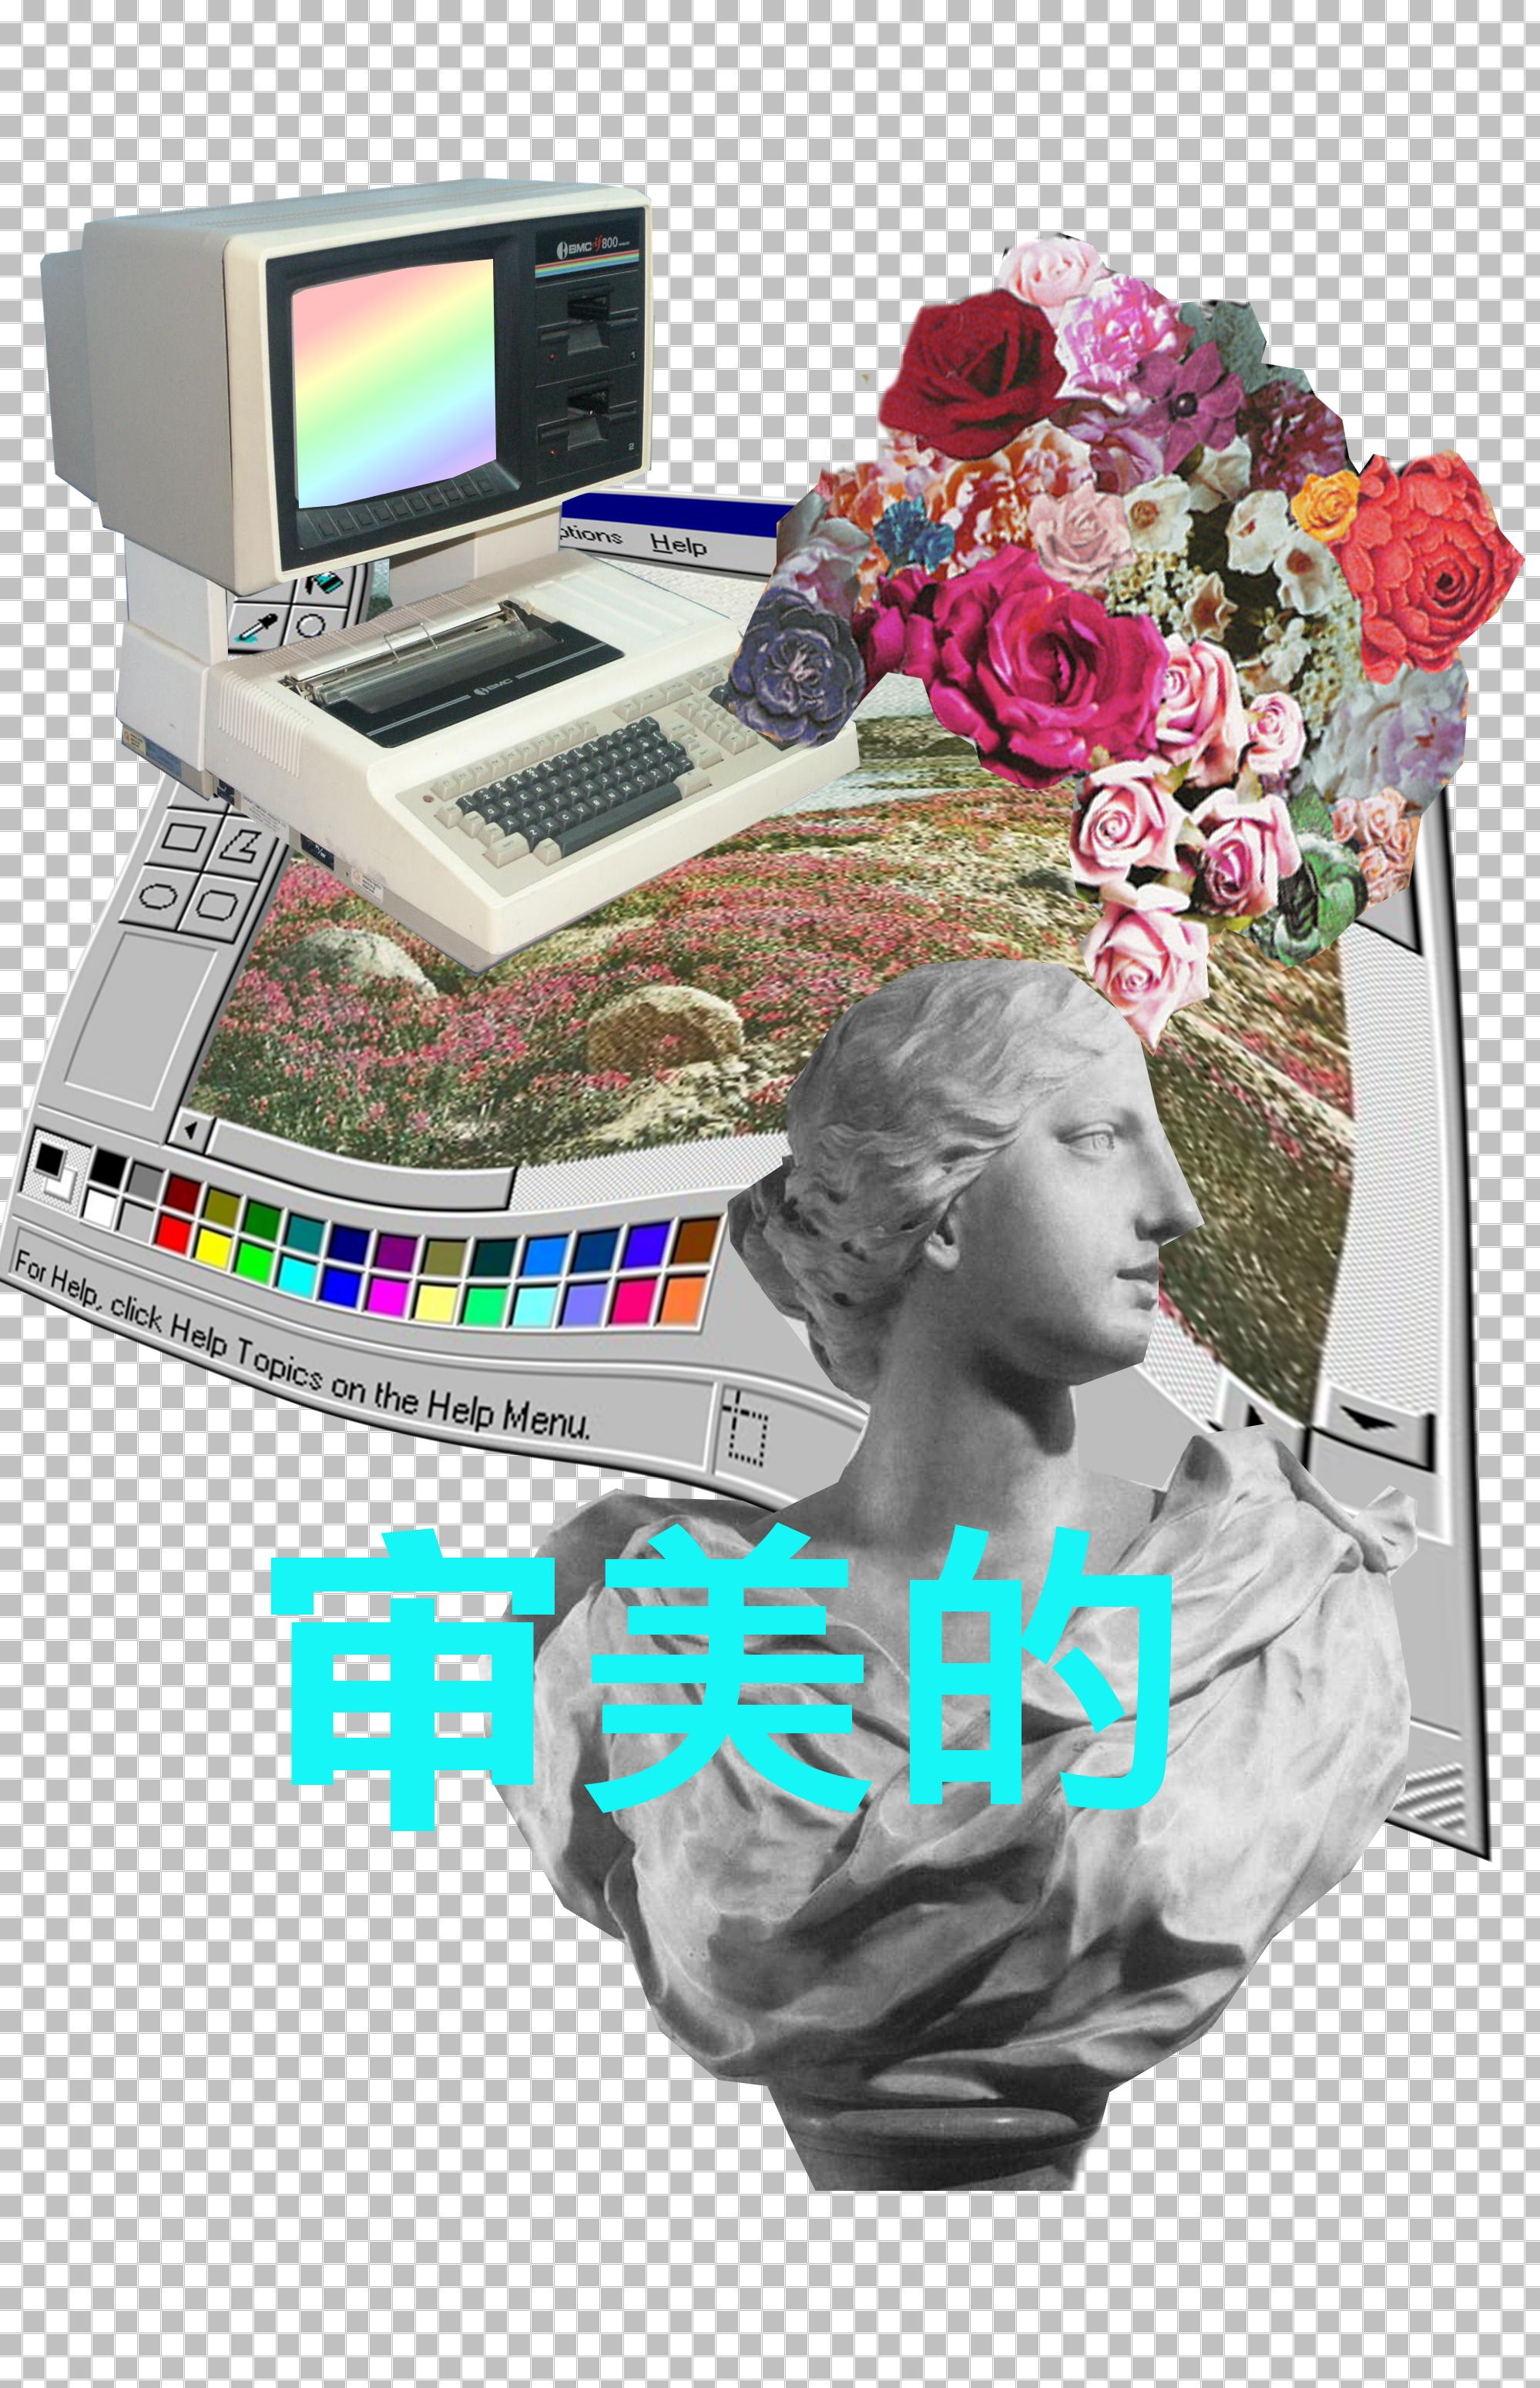 Vaporwave iphone wallpaper tumblr - Paint A Pretty Picture With Flowers And Such Follow Http Capersnvapors Tumblr Vaporwave